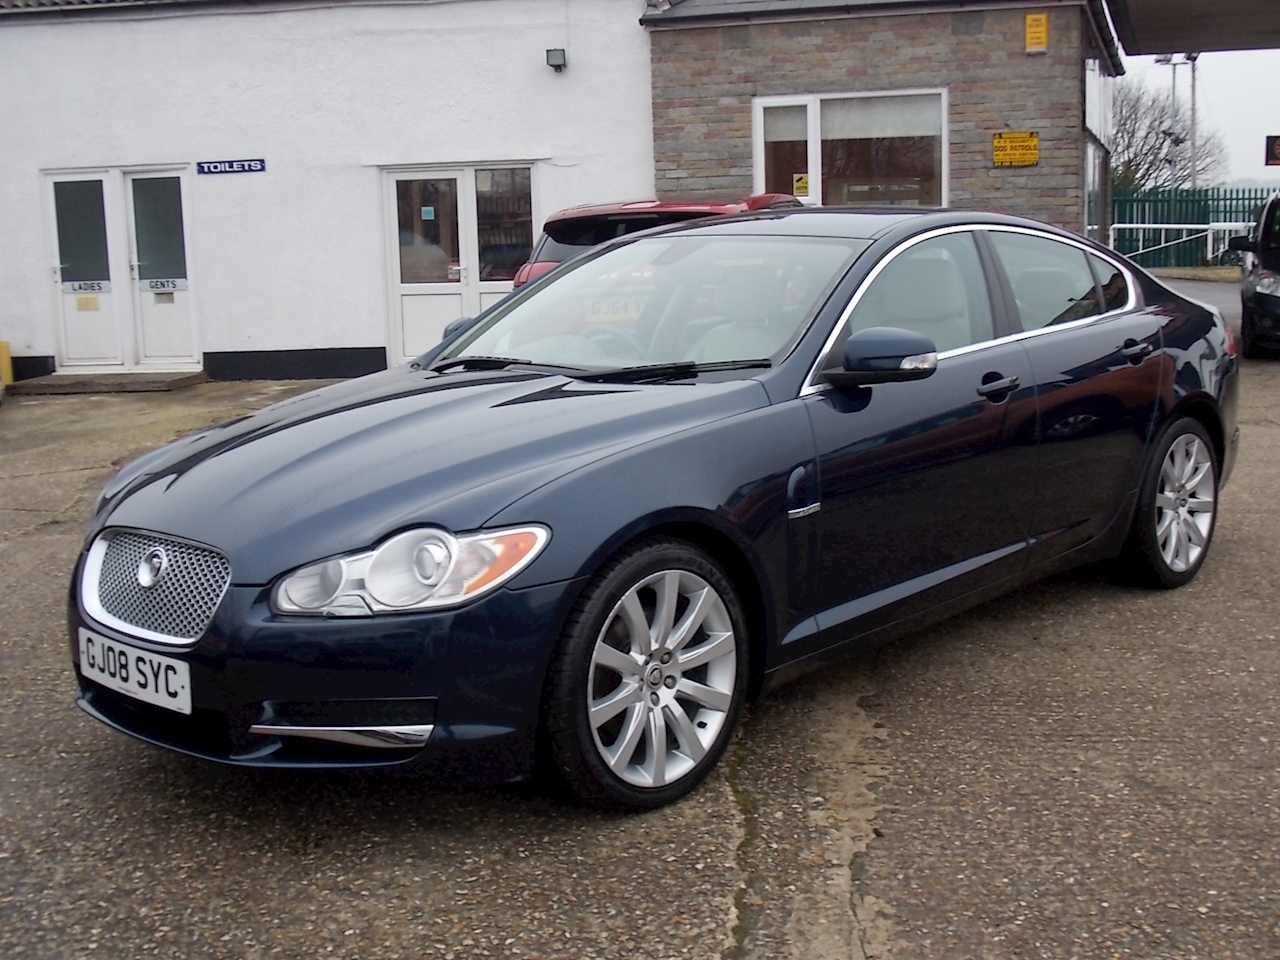 Jaguar Xf V6 Premium Luxury Saloon 2.7 Automatic Diesel